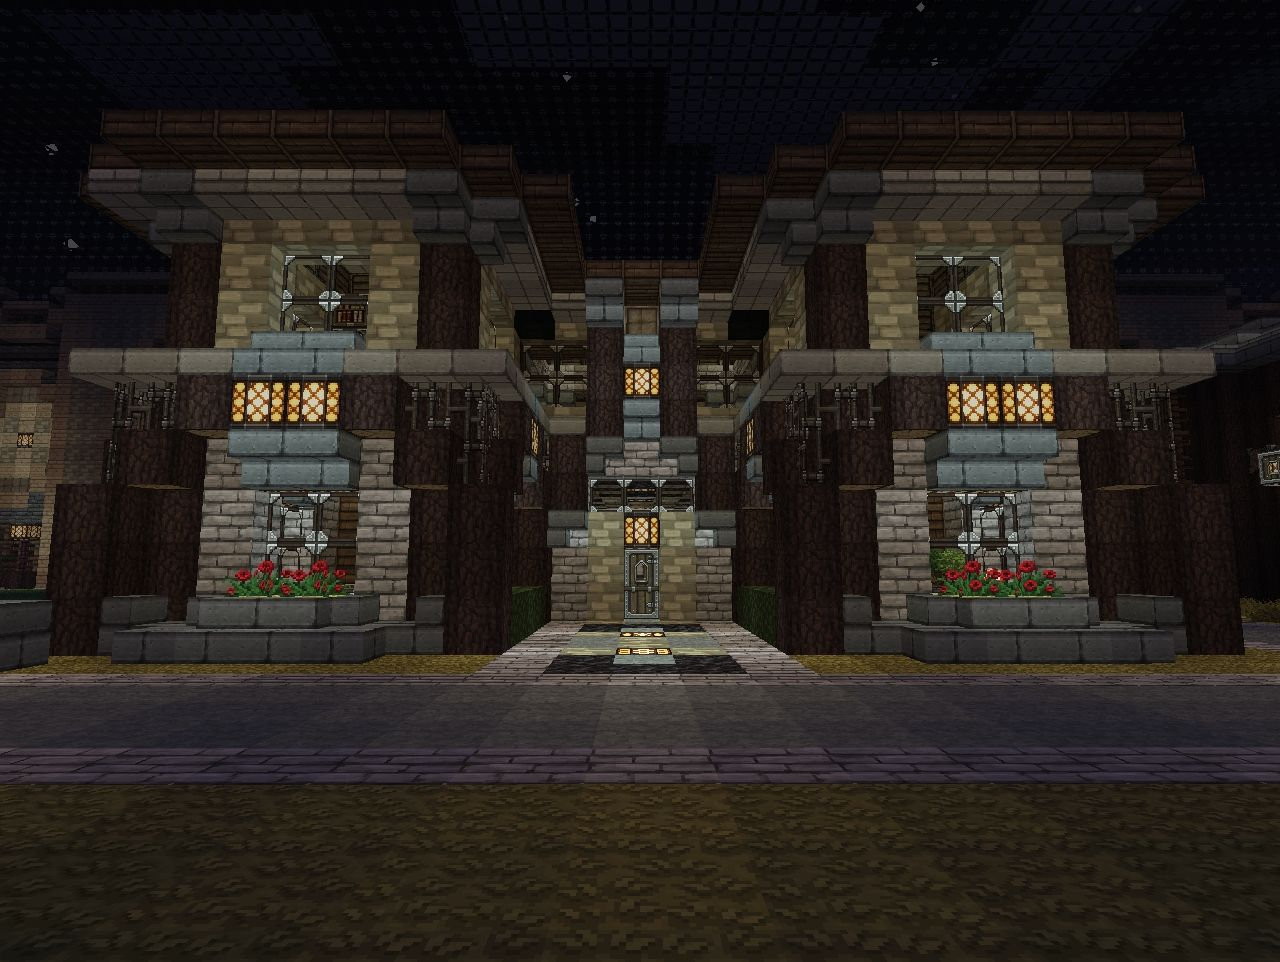 Minecraft Bedrooms 4 Bedroom House With Arch Disign Minecraft Project